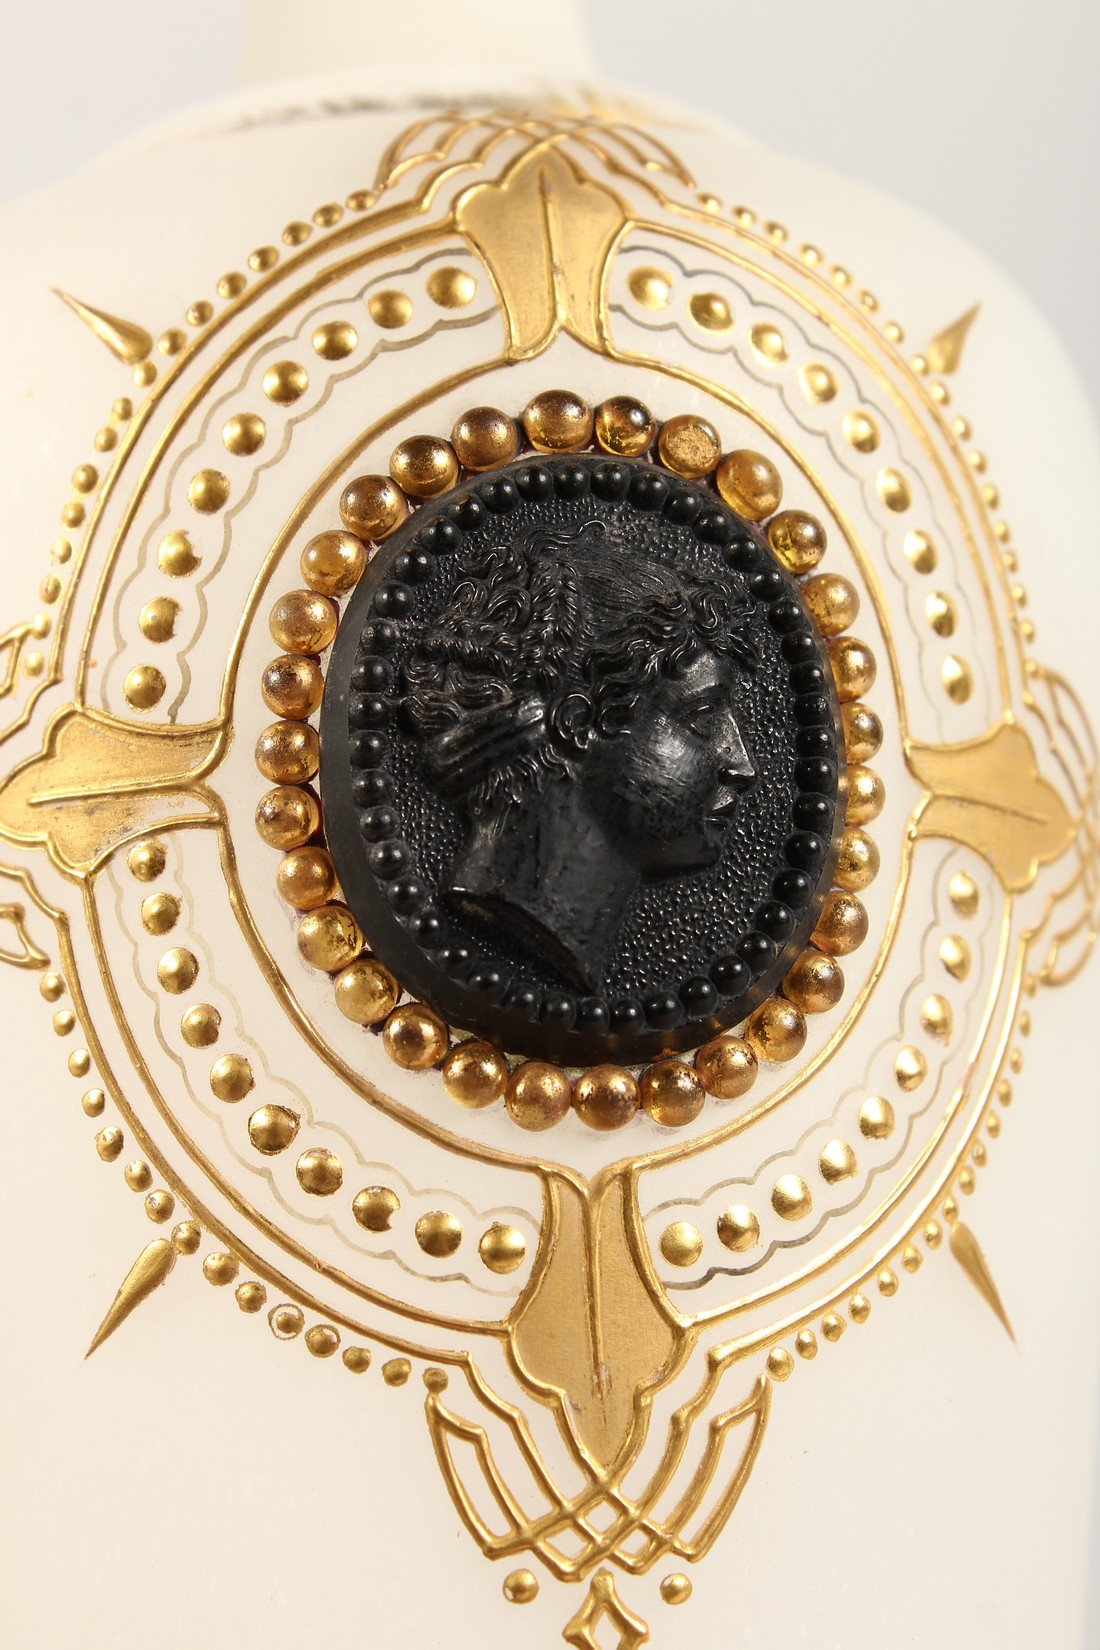 A PAIR OF CAMEO CLASSIC FROSTED VASES with a black cameo with gilt decorations 12ins high. - Image 8 of 10